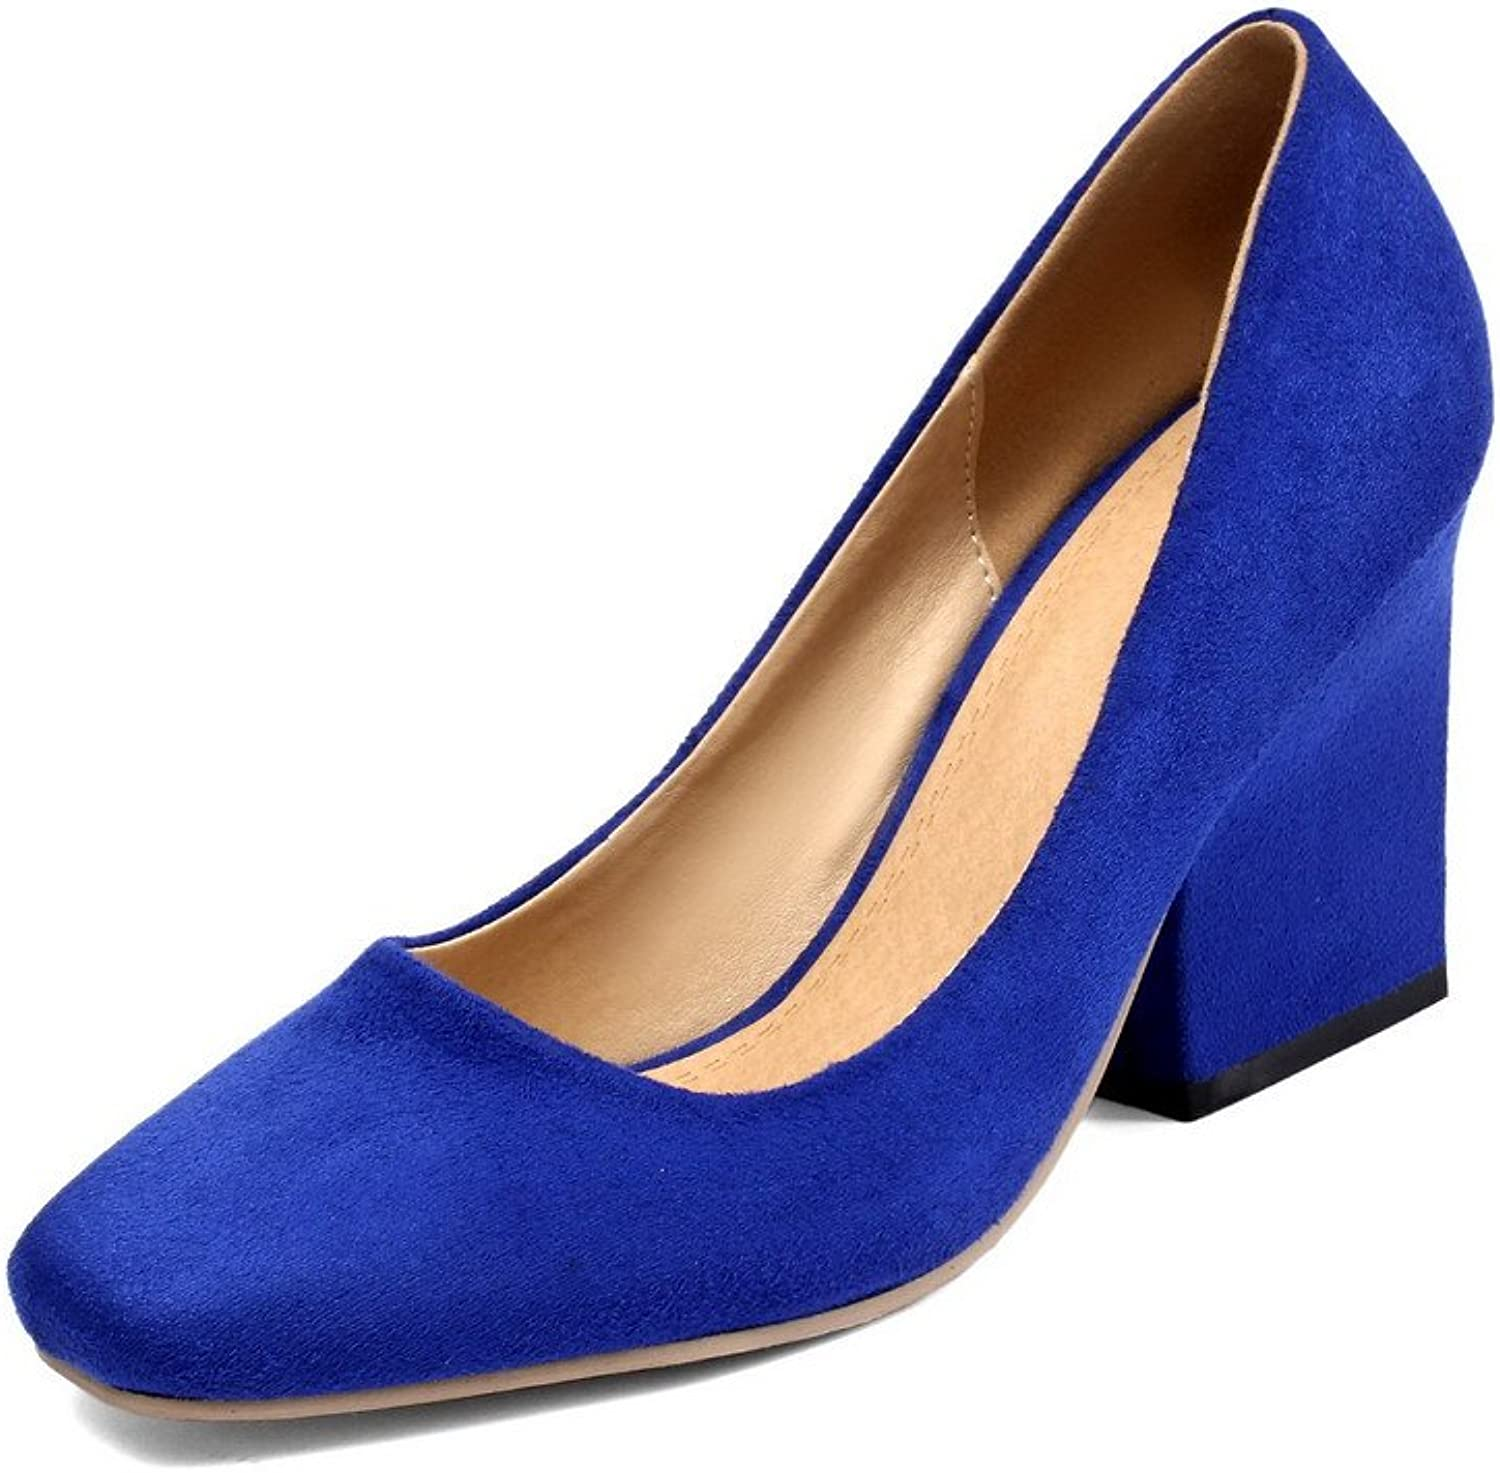 AllhqFashion Women's Solid Frosted High Heels Pull On Square Closed Toe Pumps shoes